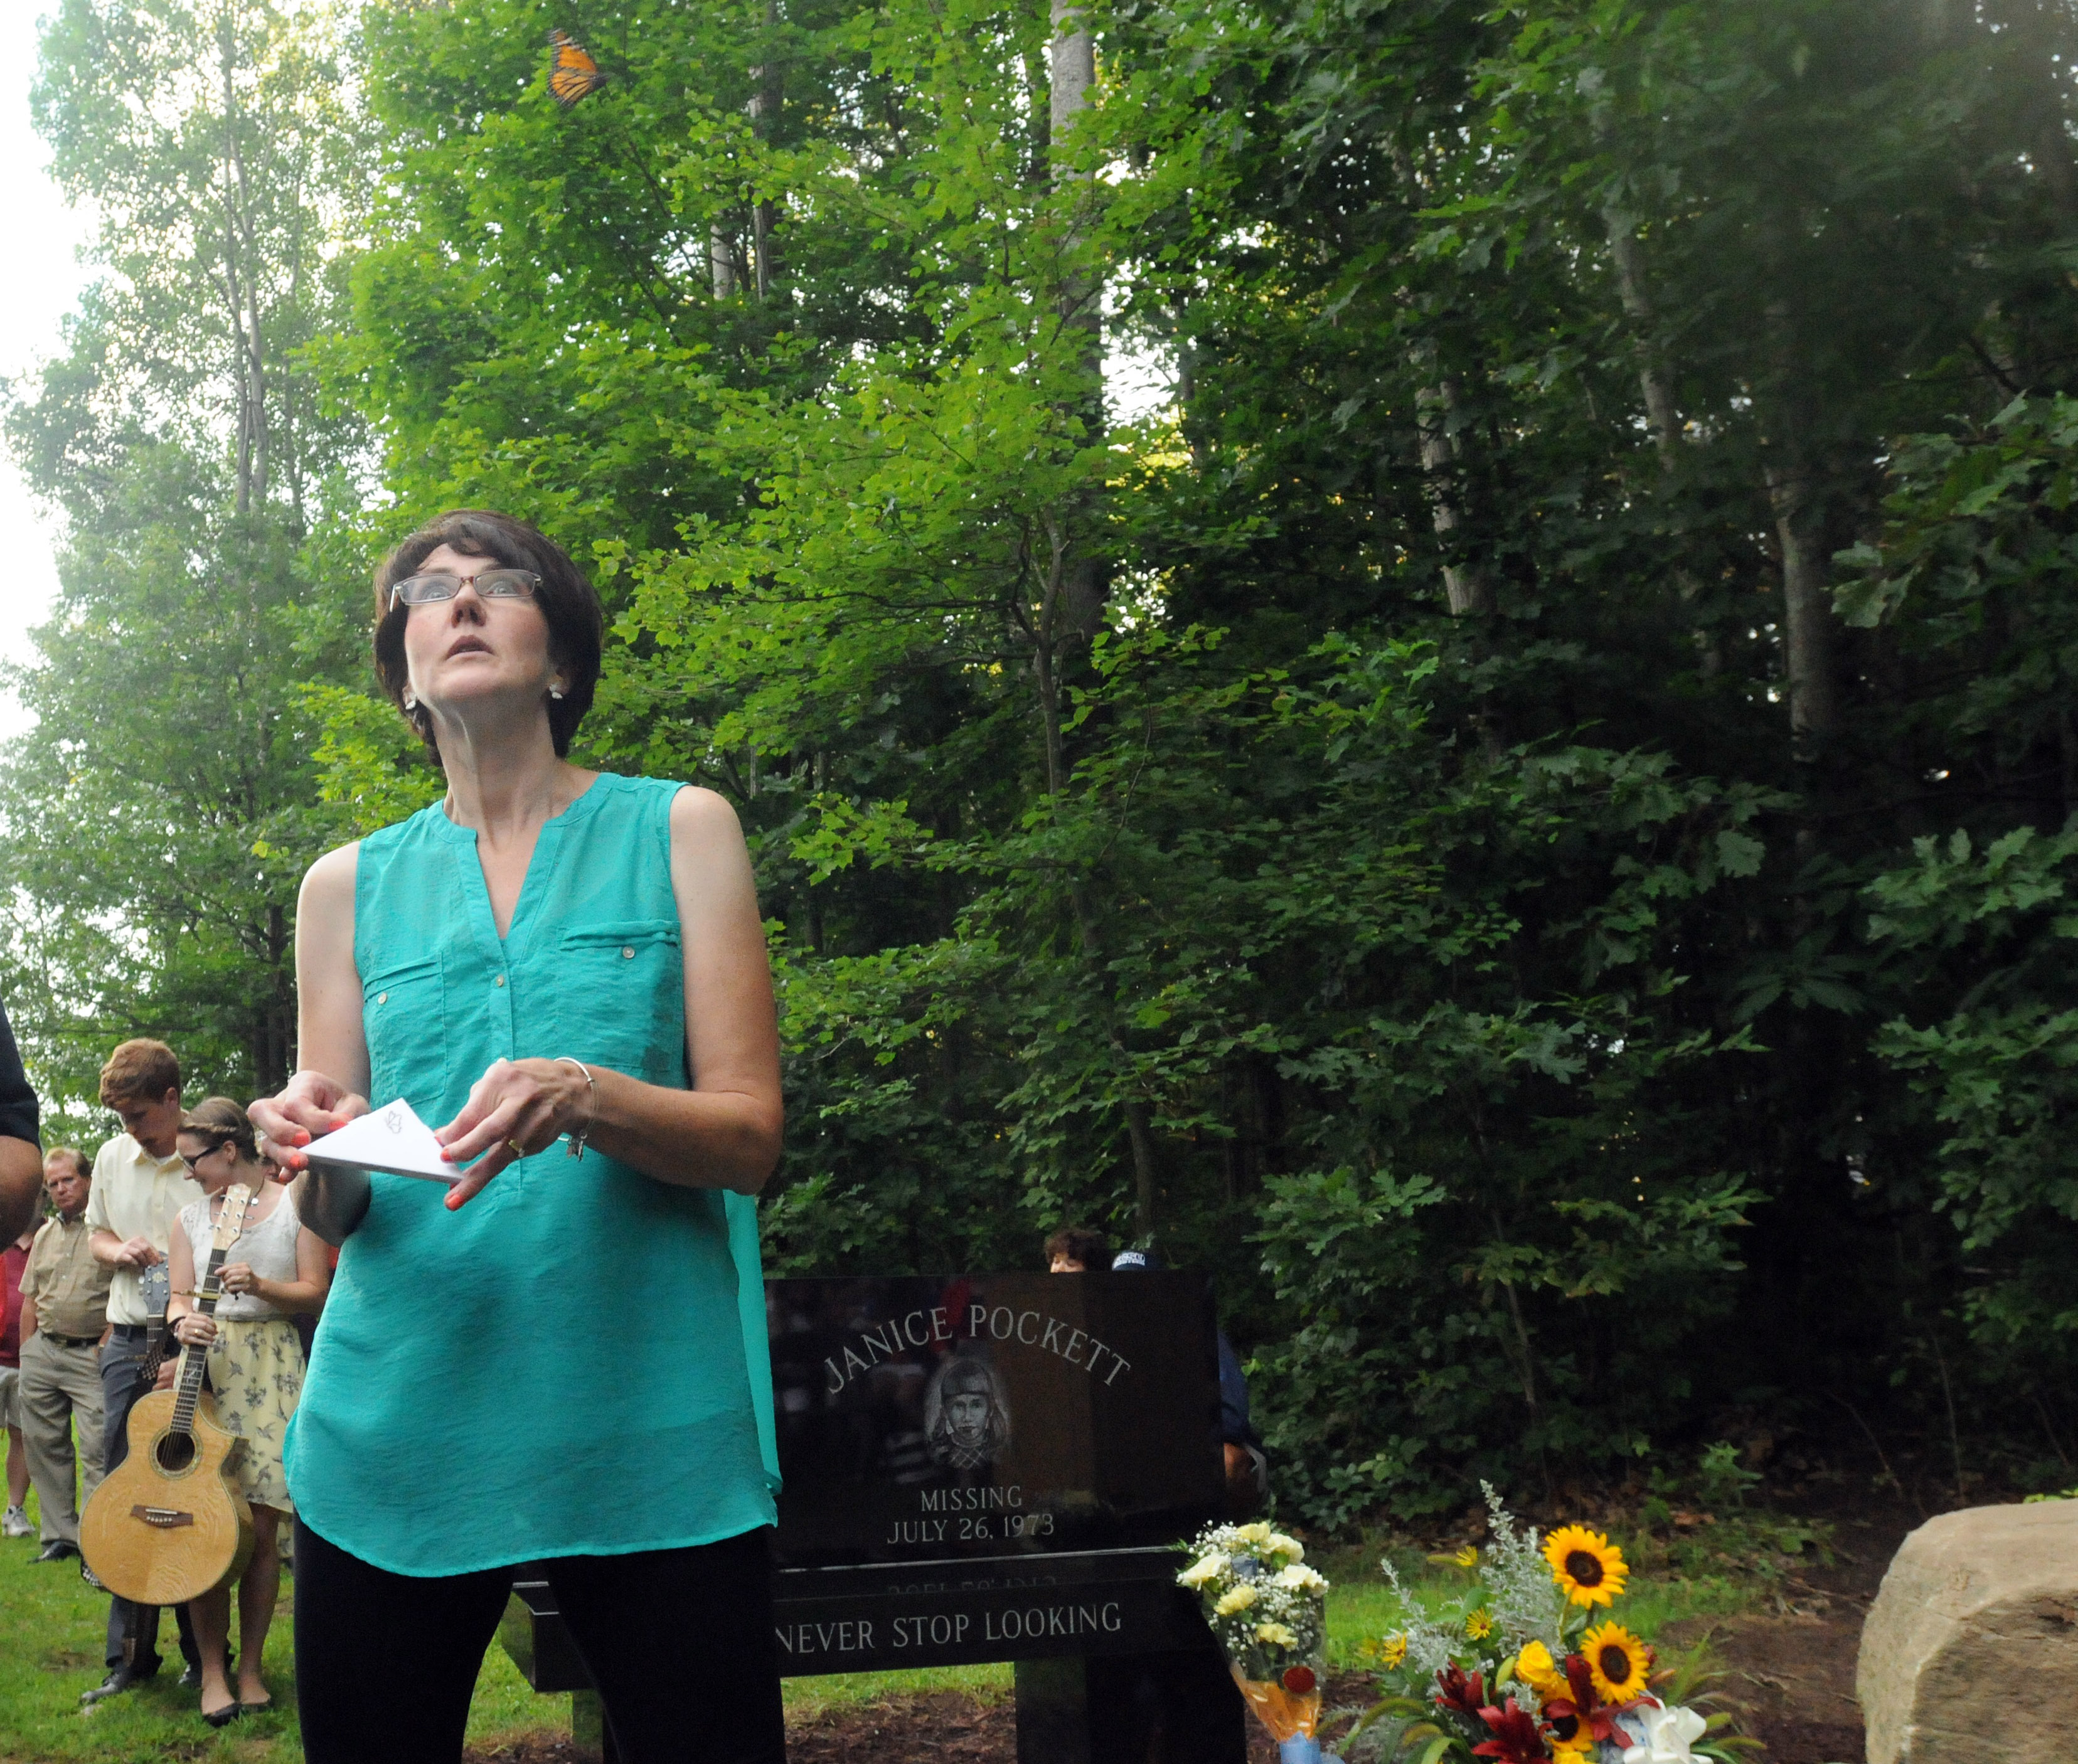 Janice Pockett's sister, Mary Engelbrecht, watches a butterfly rise into the air